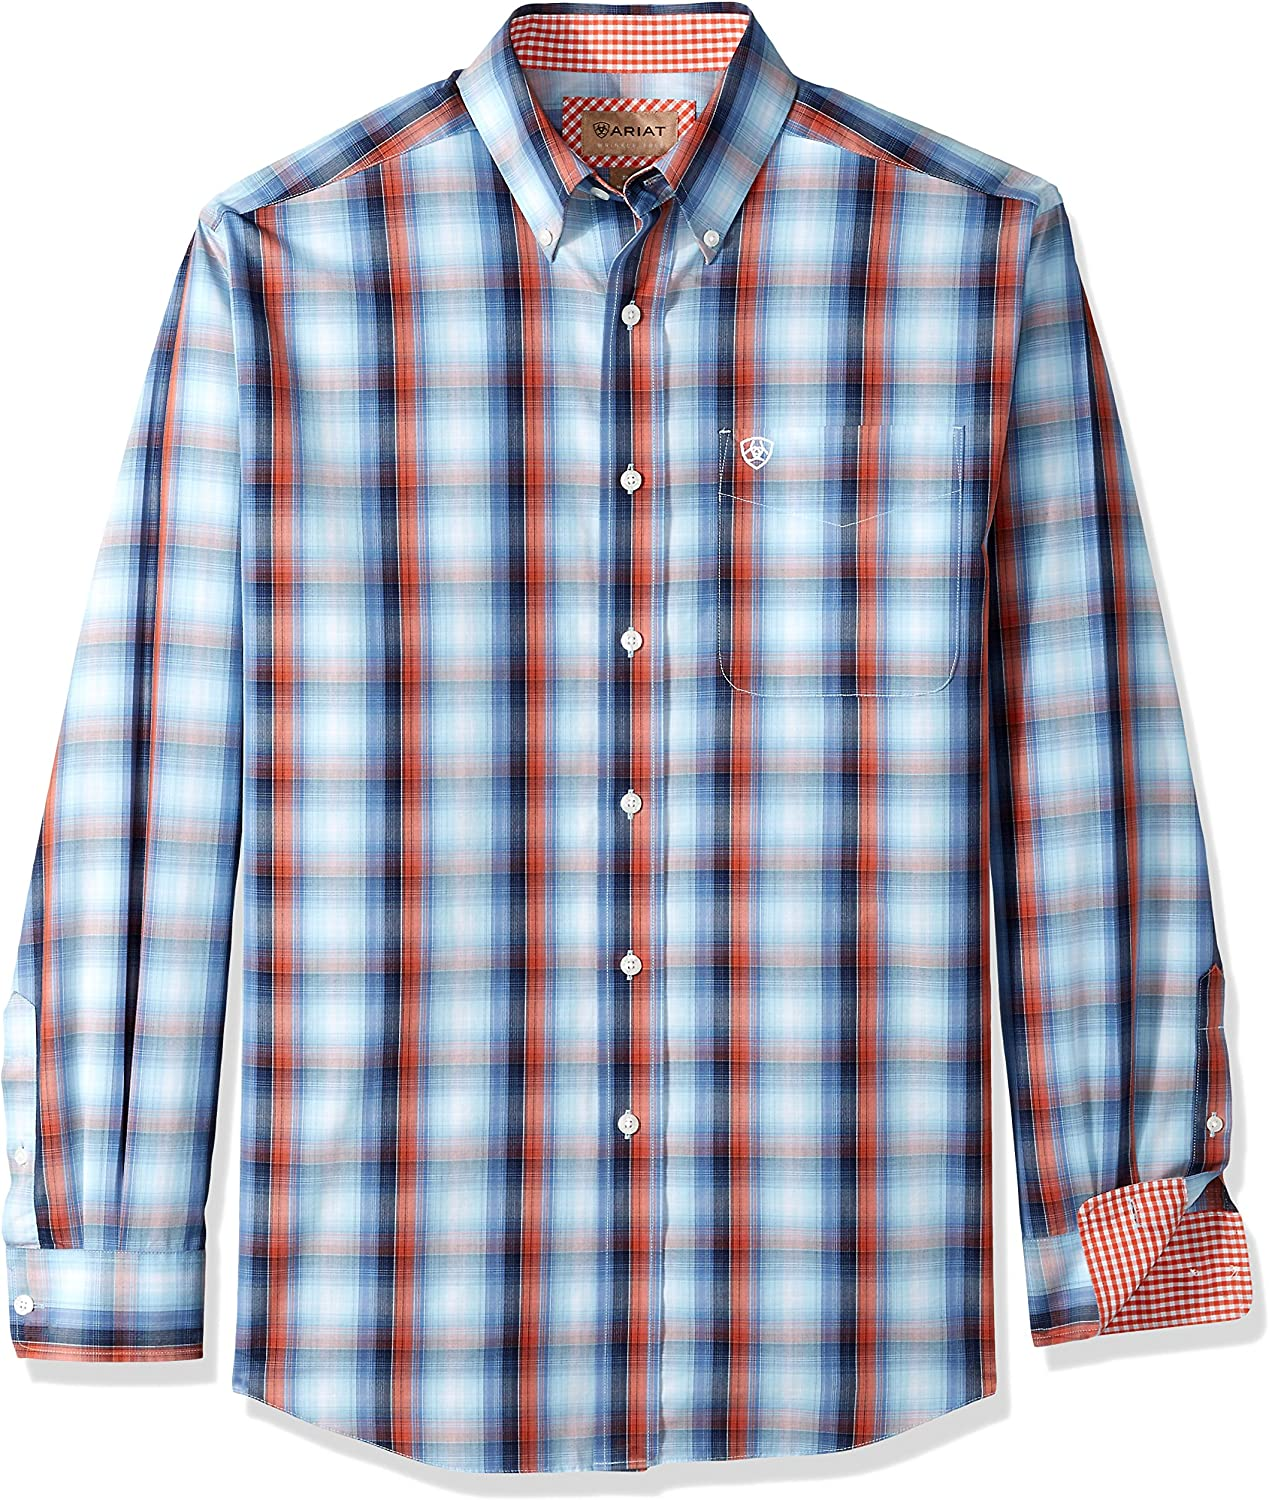 Ariat Men's Big and Tall Classic Fit Wrinkle Free Shirt